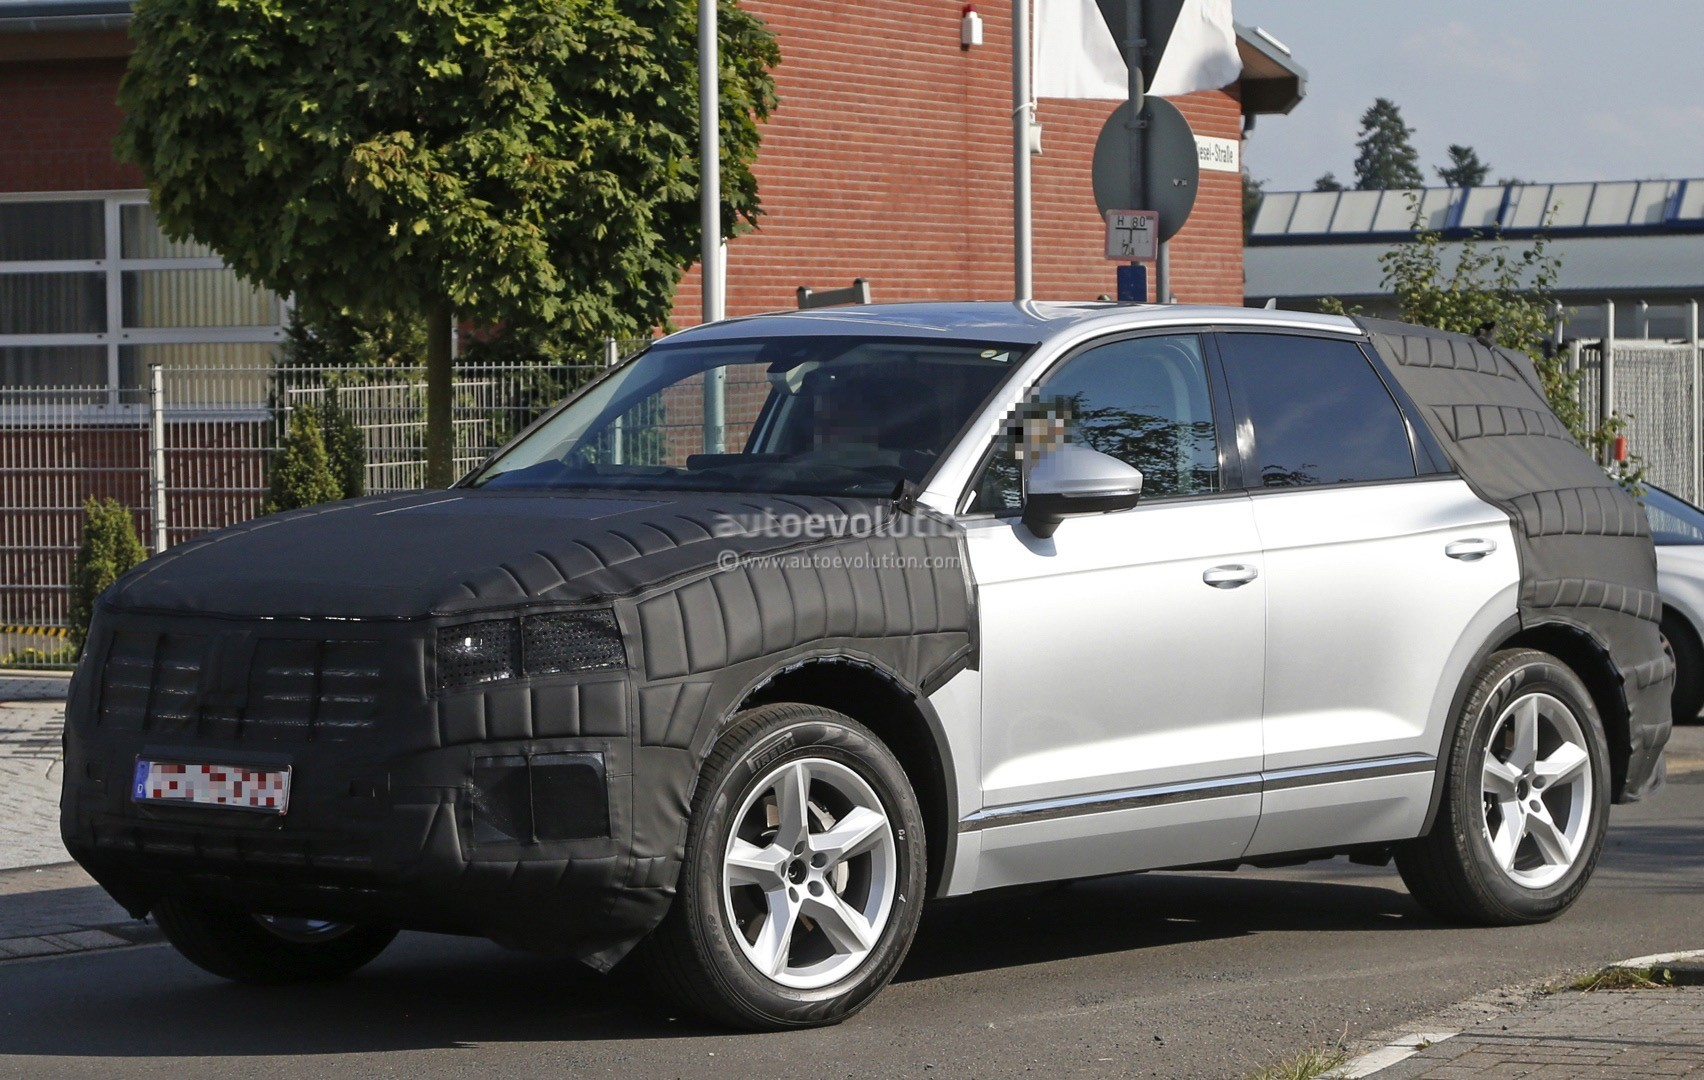 2018 volkswagen touareg spied in production ready form autoevolution. Black Bedroom Furniture Sets. Home Design Ideas